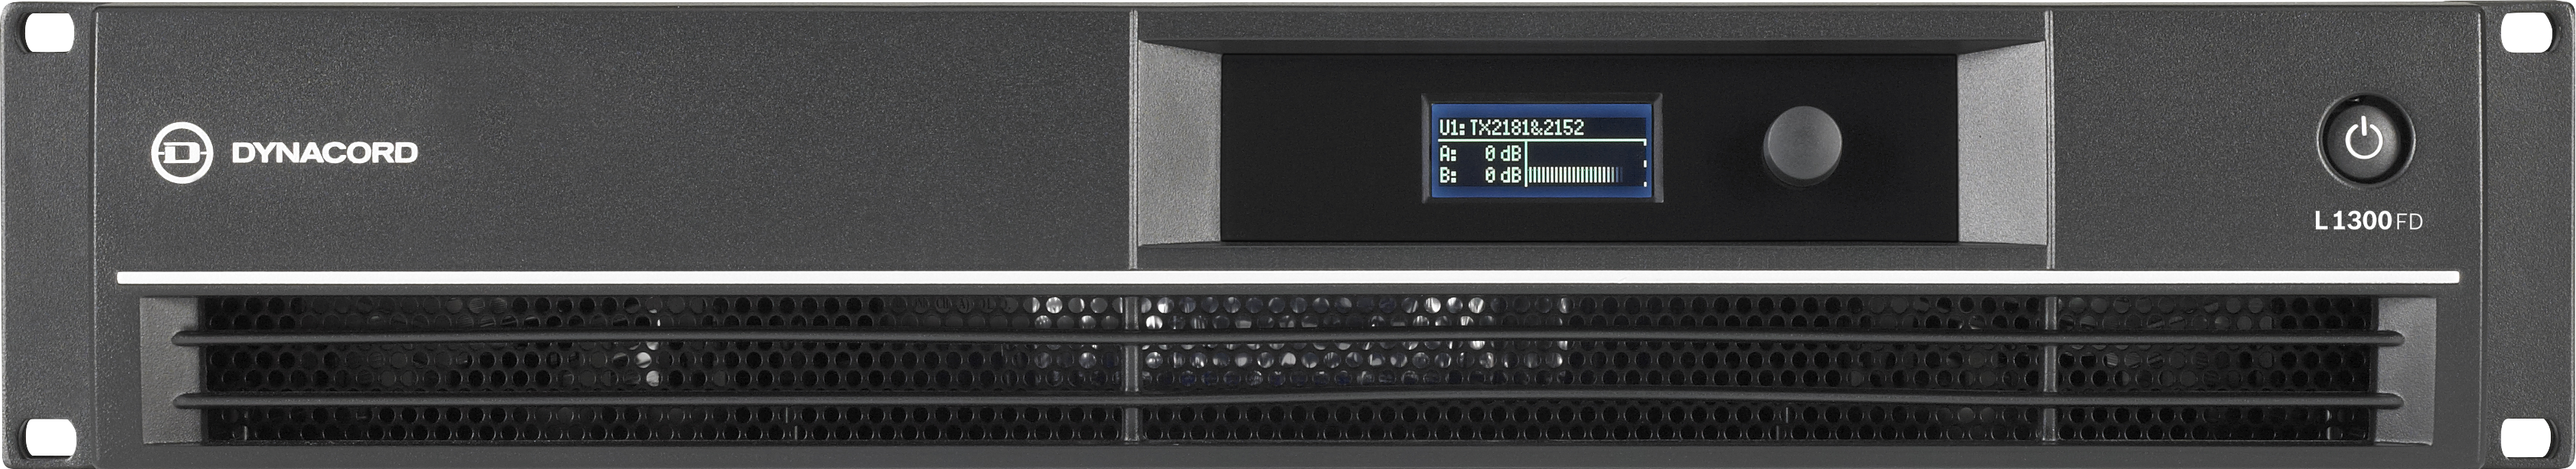 L1300FD DSP 2 x 650 W Power Amplifier for live performance